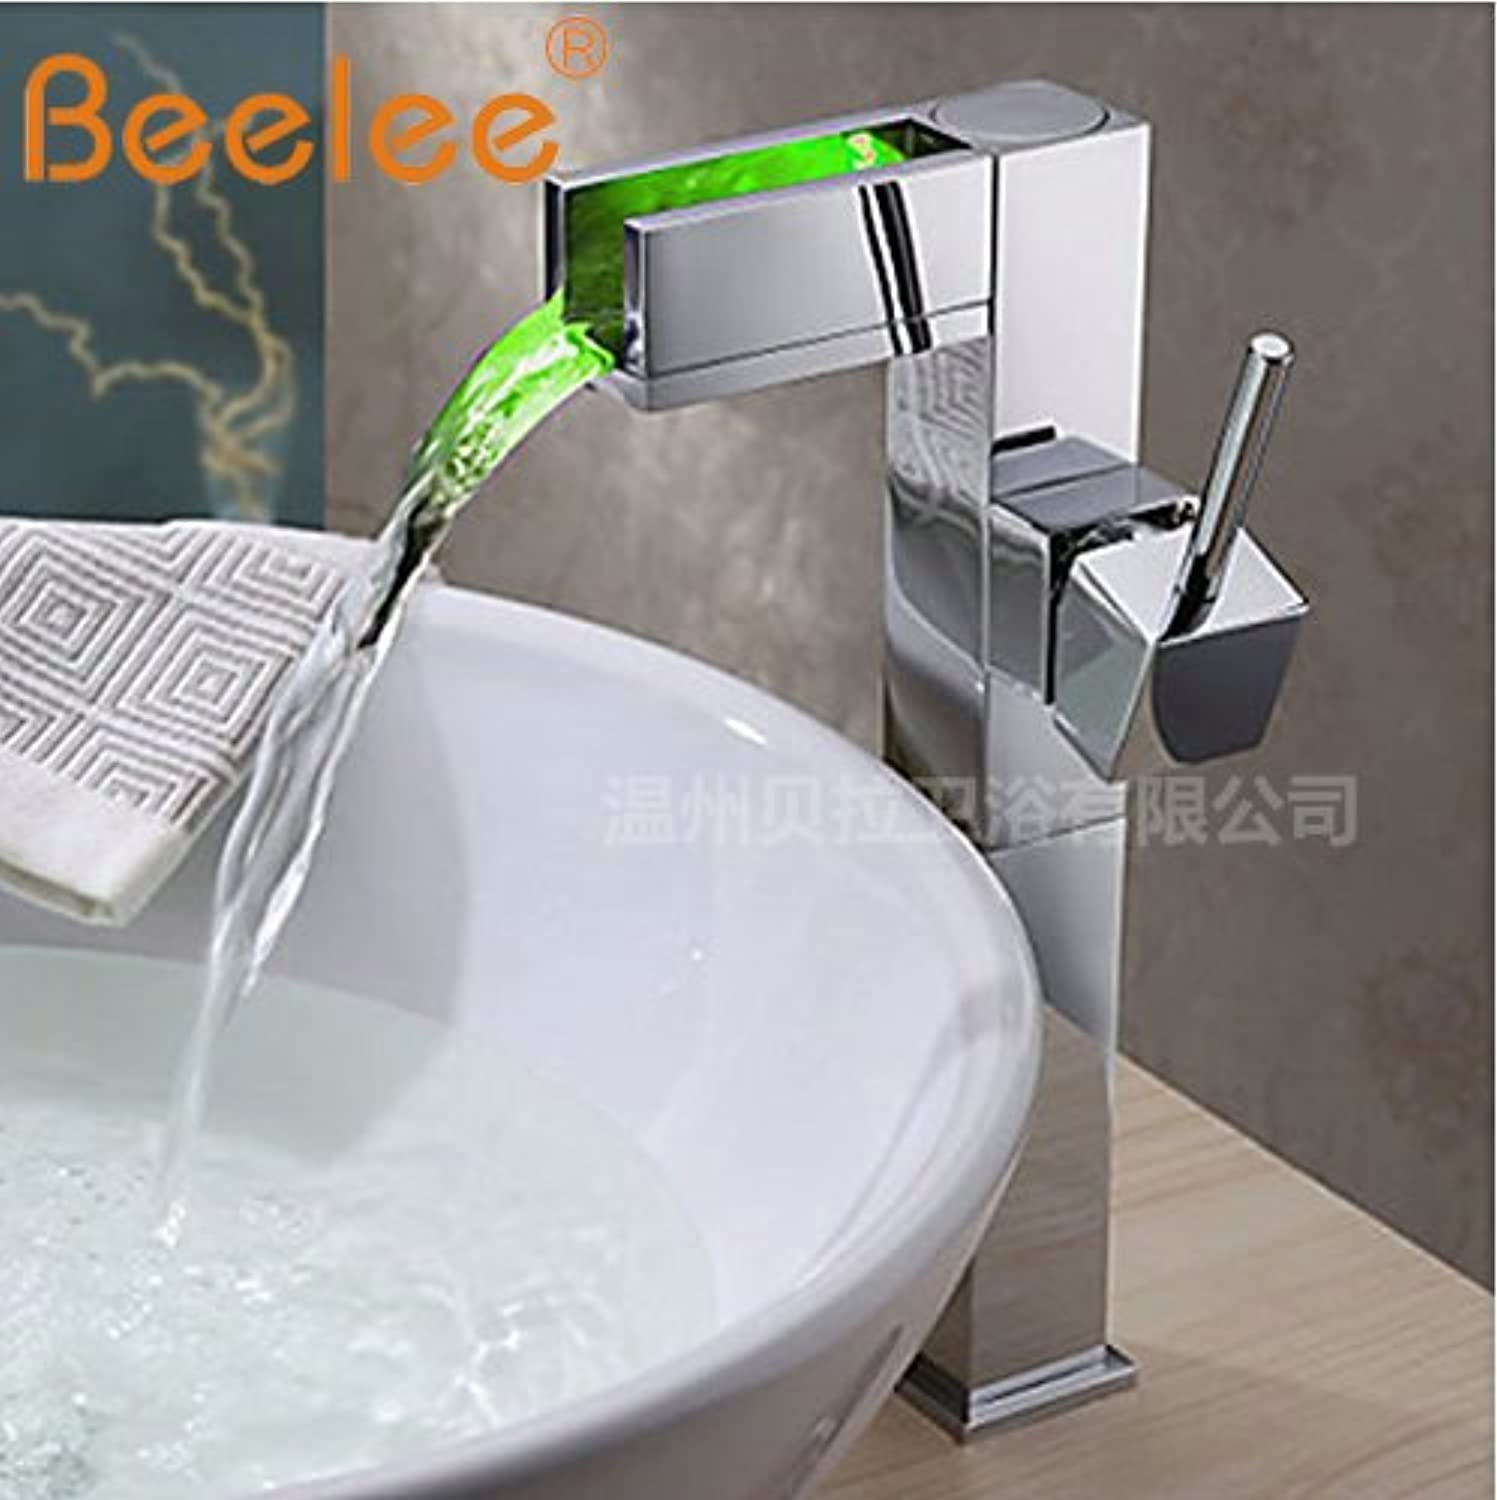 Lpophy Bathroom Sink Mixer Taps Faucet Bath Waterfall Cold and Hot Water Tap for Washroom Bathroom and Kitchen The Copper Led Falls High, Single Hole Hot and Cold B